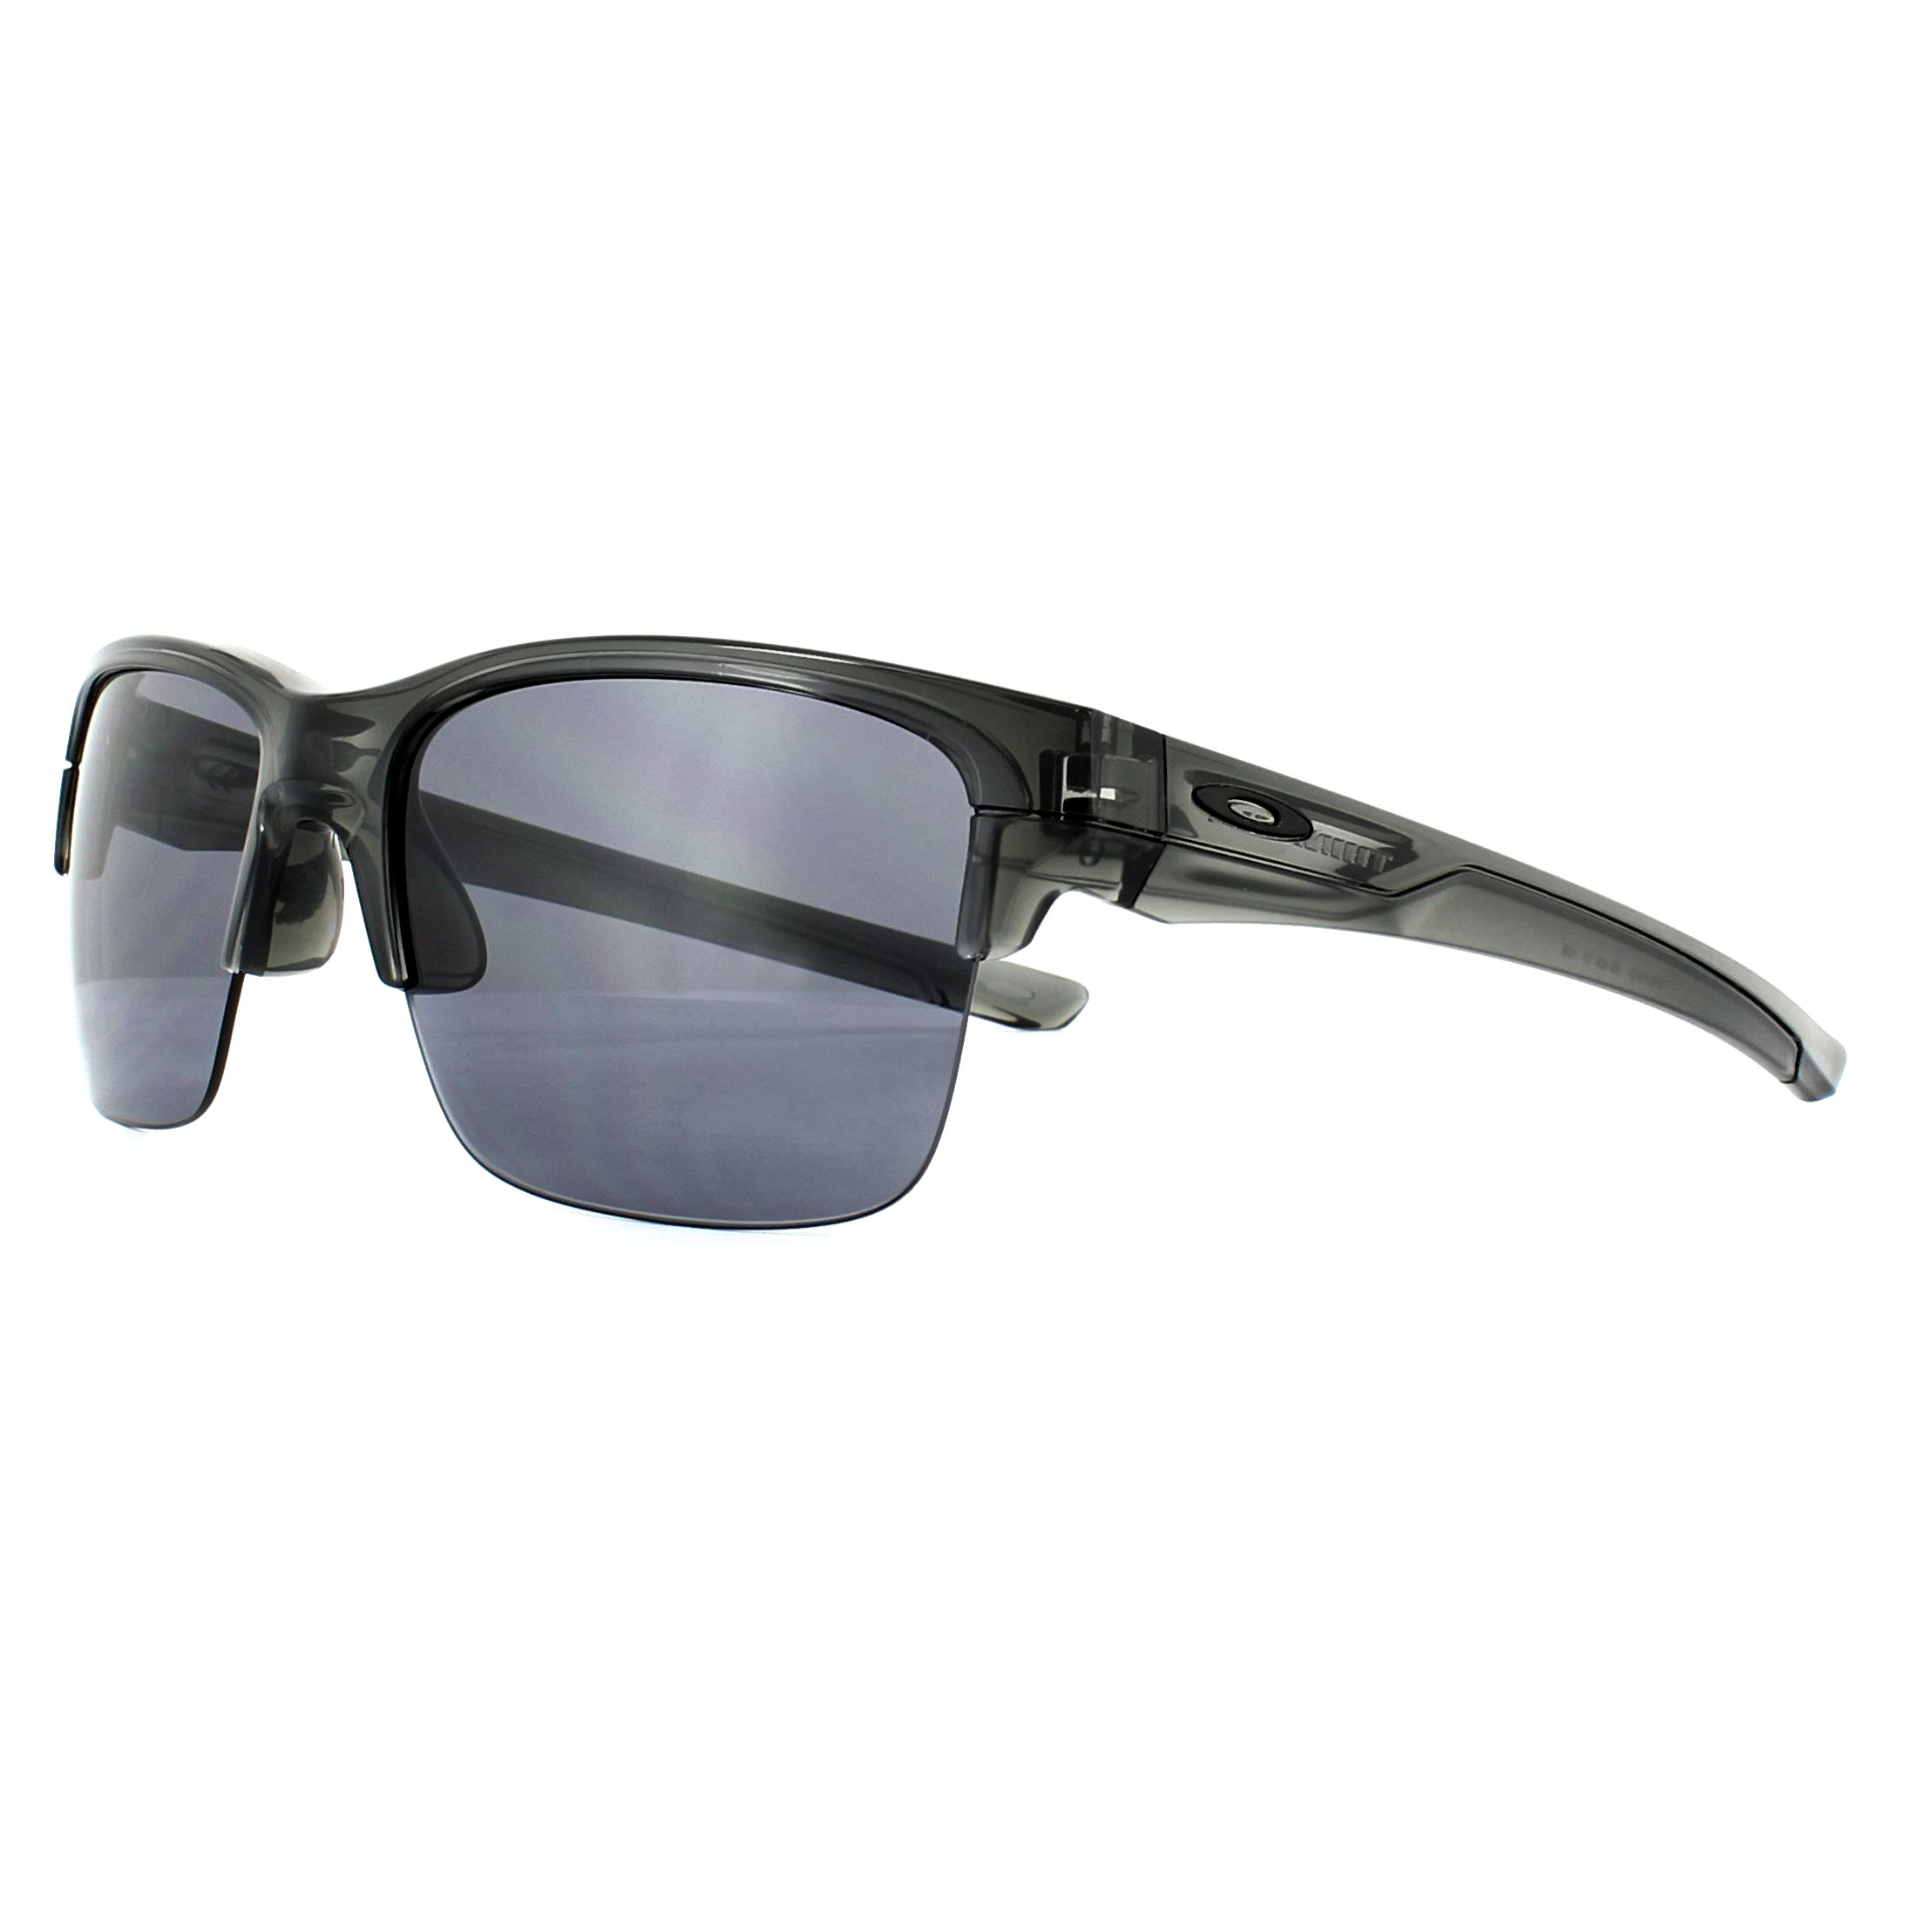 627056e8e2 Sentinel Oakley Sunglasses Cohort OO9301-06 Polished Black VR28 Black  Iridium Polarized